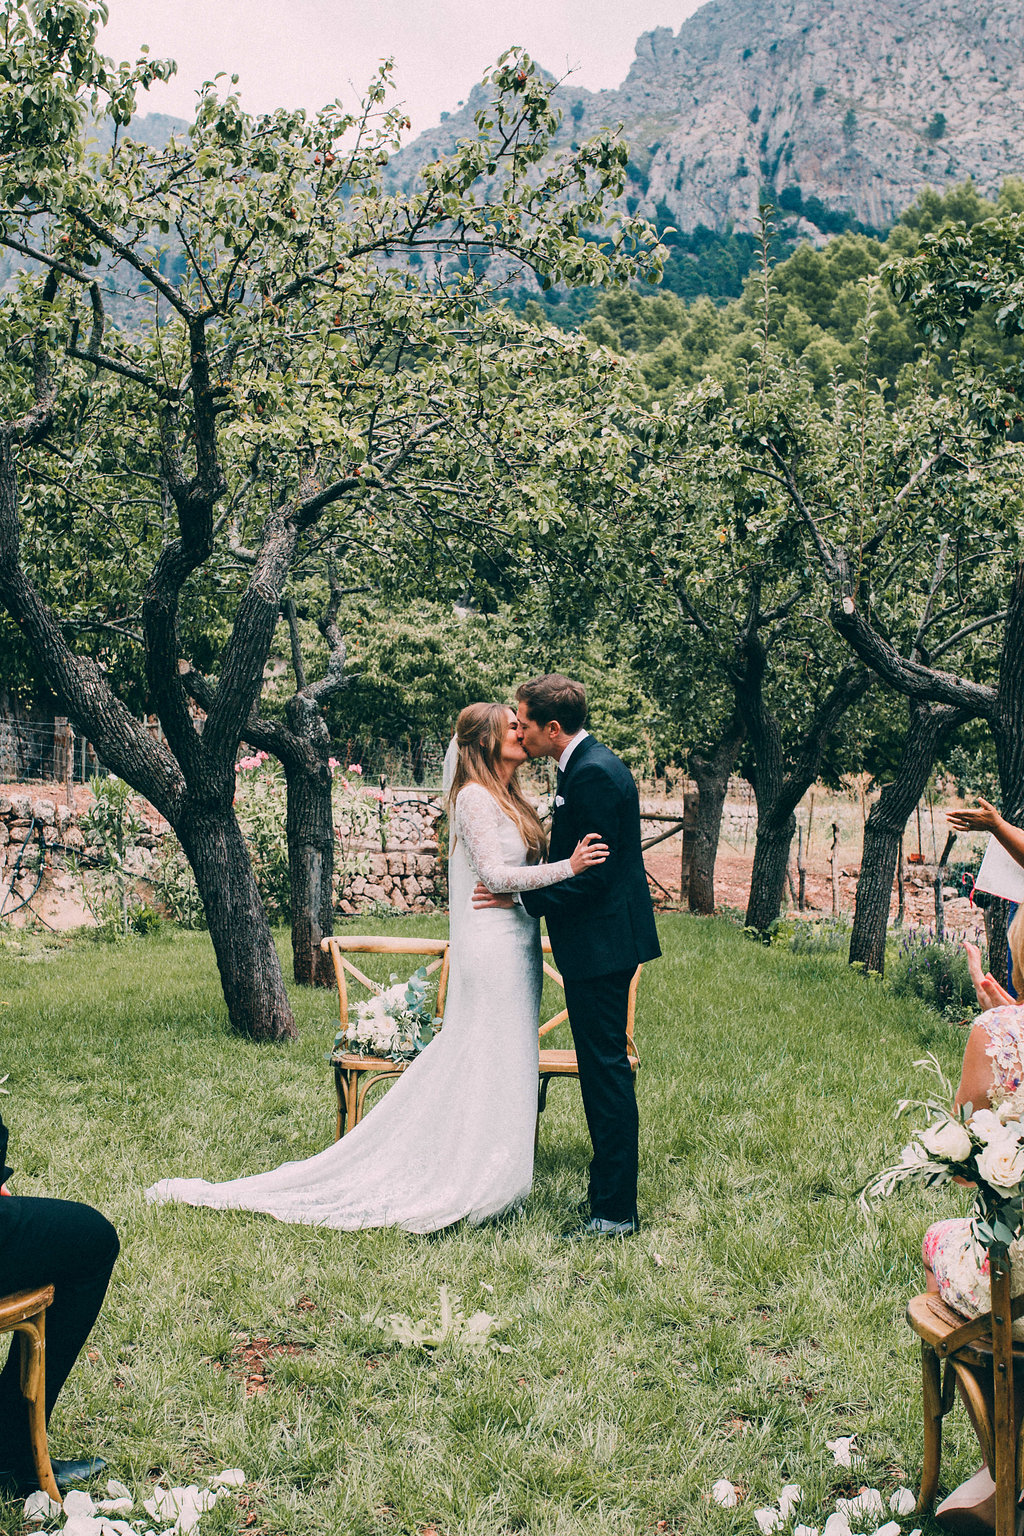 Pippa y Dale, la boda perfecta en Fornalutx / The perfect wedding in Fornalutx